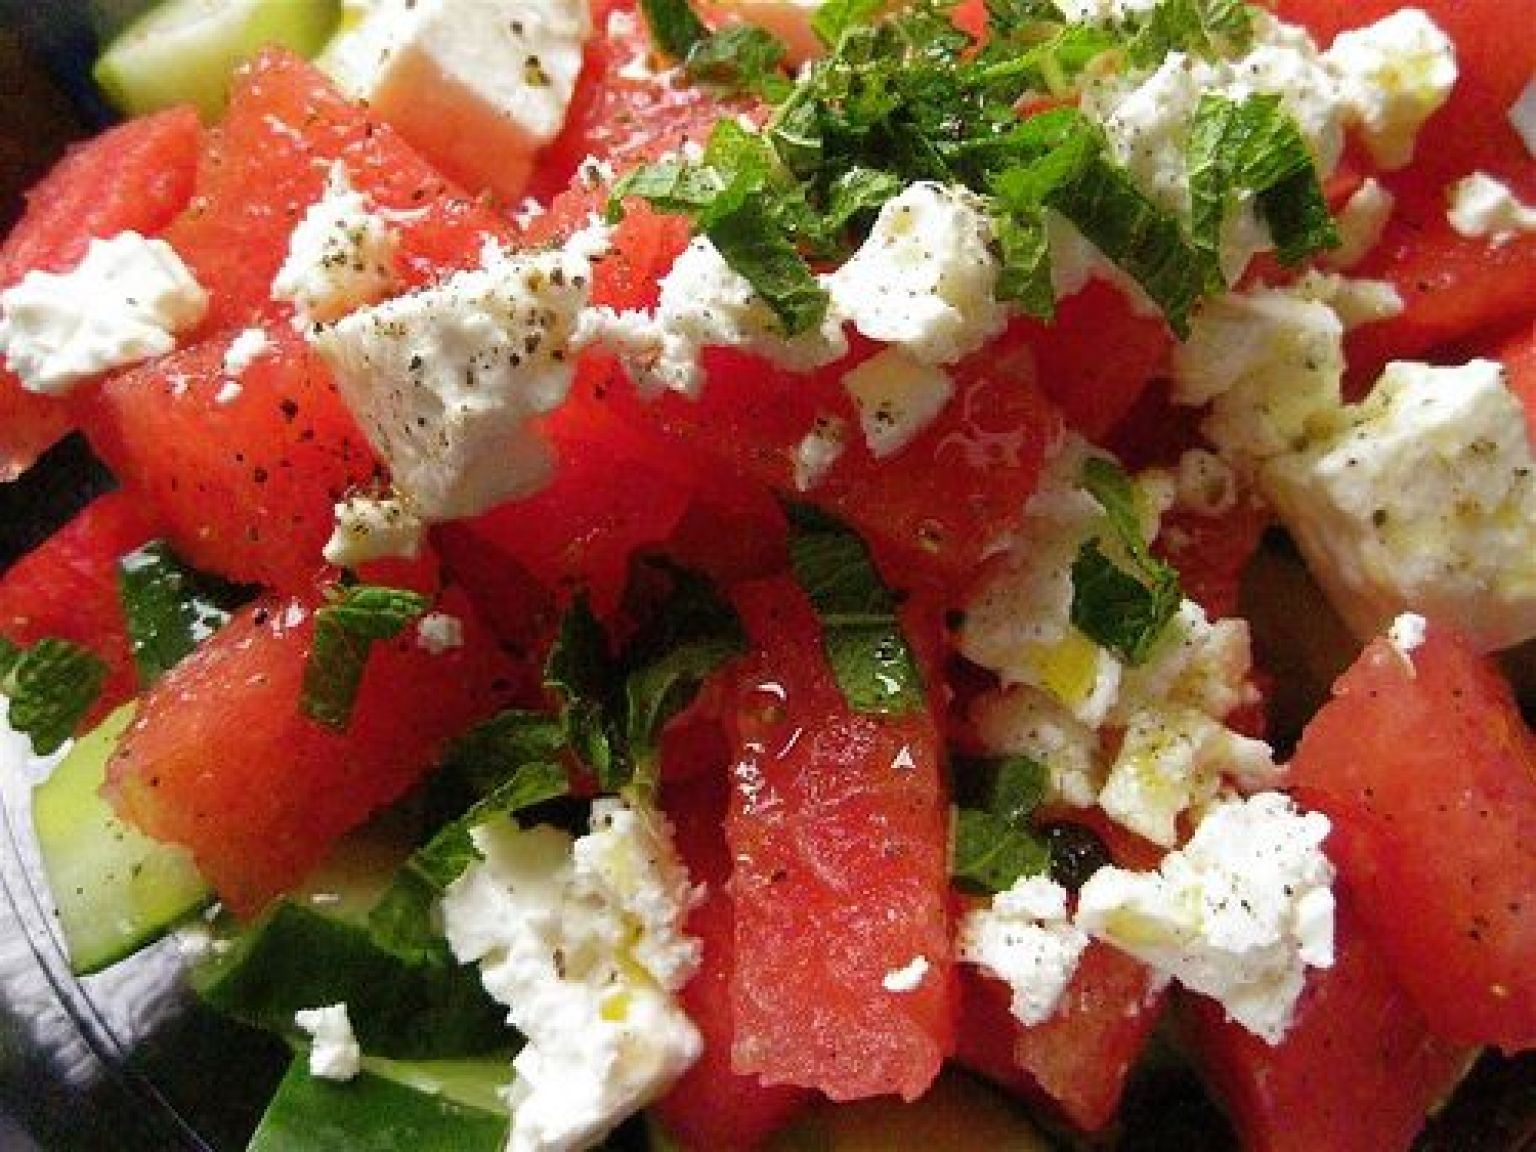 watermelon salad recipe with cucumbers mint and feta cheese huffpost. Black Bedroom Furniture Sets. Home Design Ideas